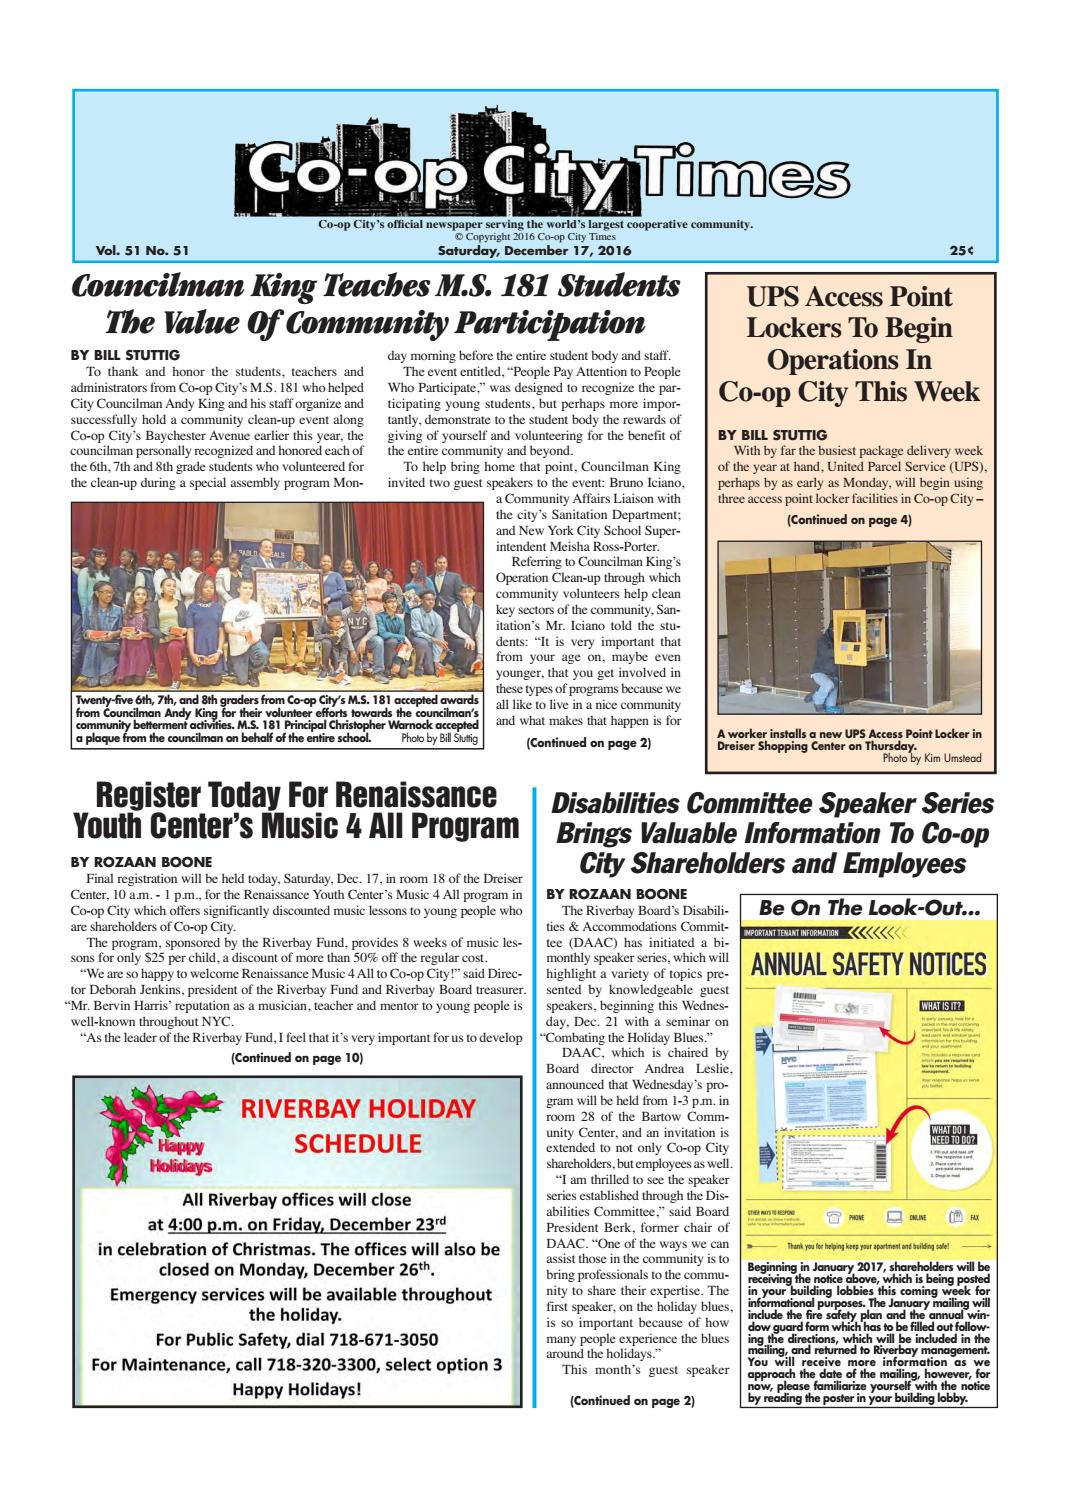 Co-op City Times 12/17/16 by Co-op City Times - issuu